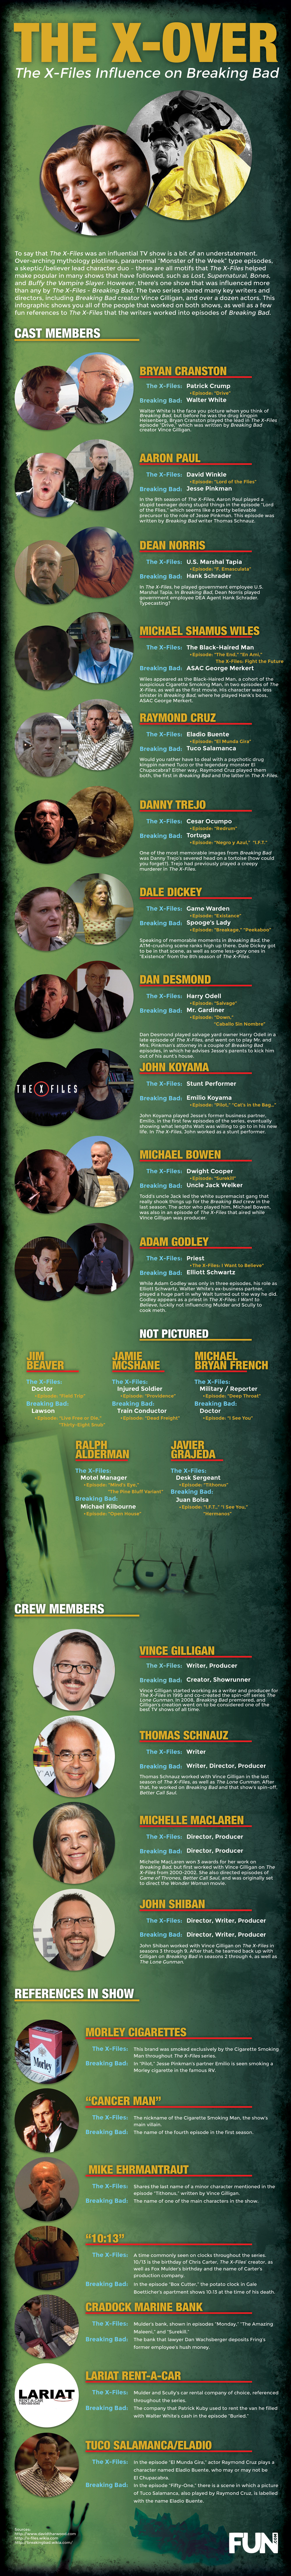 The X-Files and Breaking Bad Connection Infographic